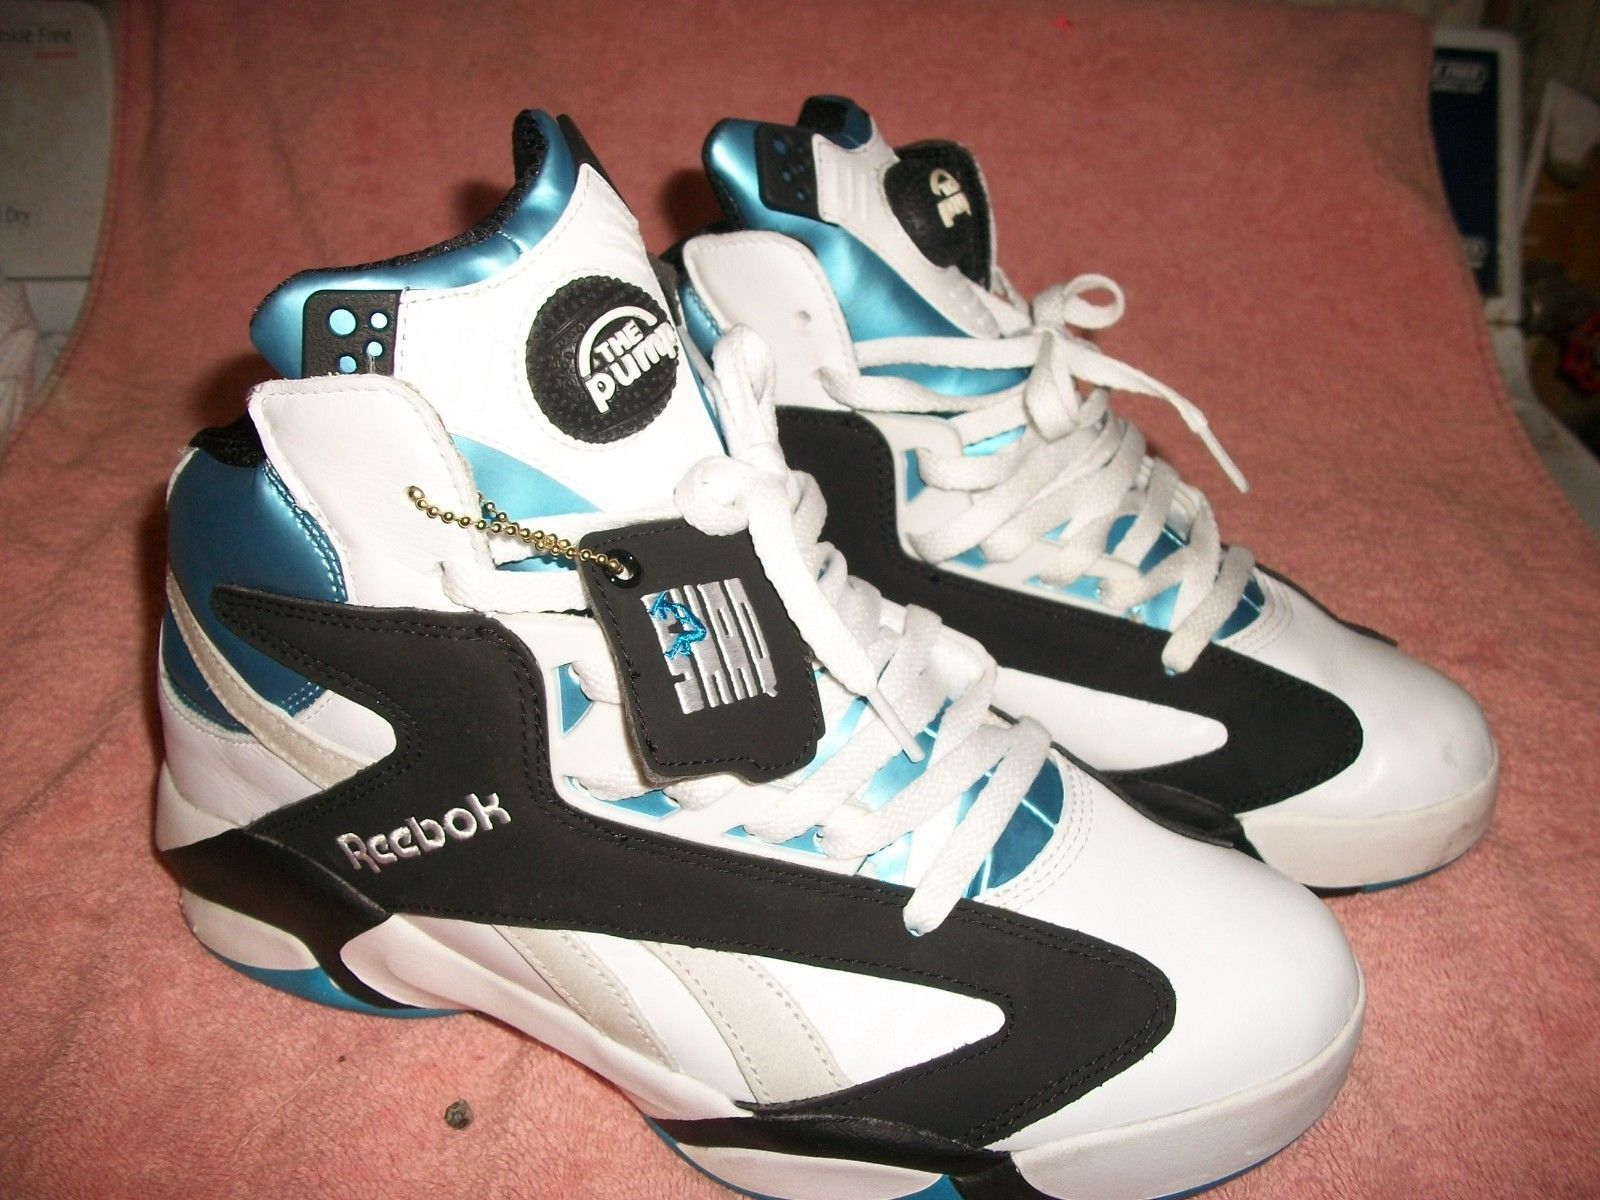 2b2da7ca18a MEN S REEBOK SHAQ ATTACK CLASSICS PUMPS WORN ABOUT TWICE SIZE 10 IN BOX  PERFECT